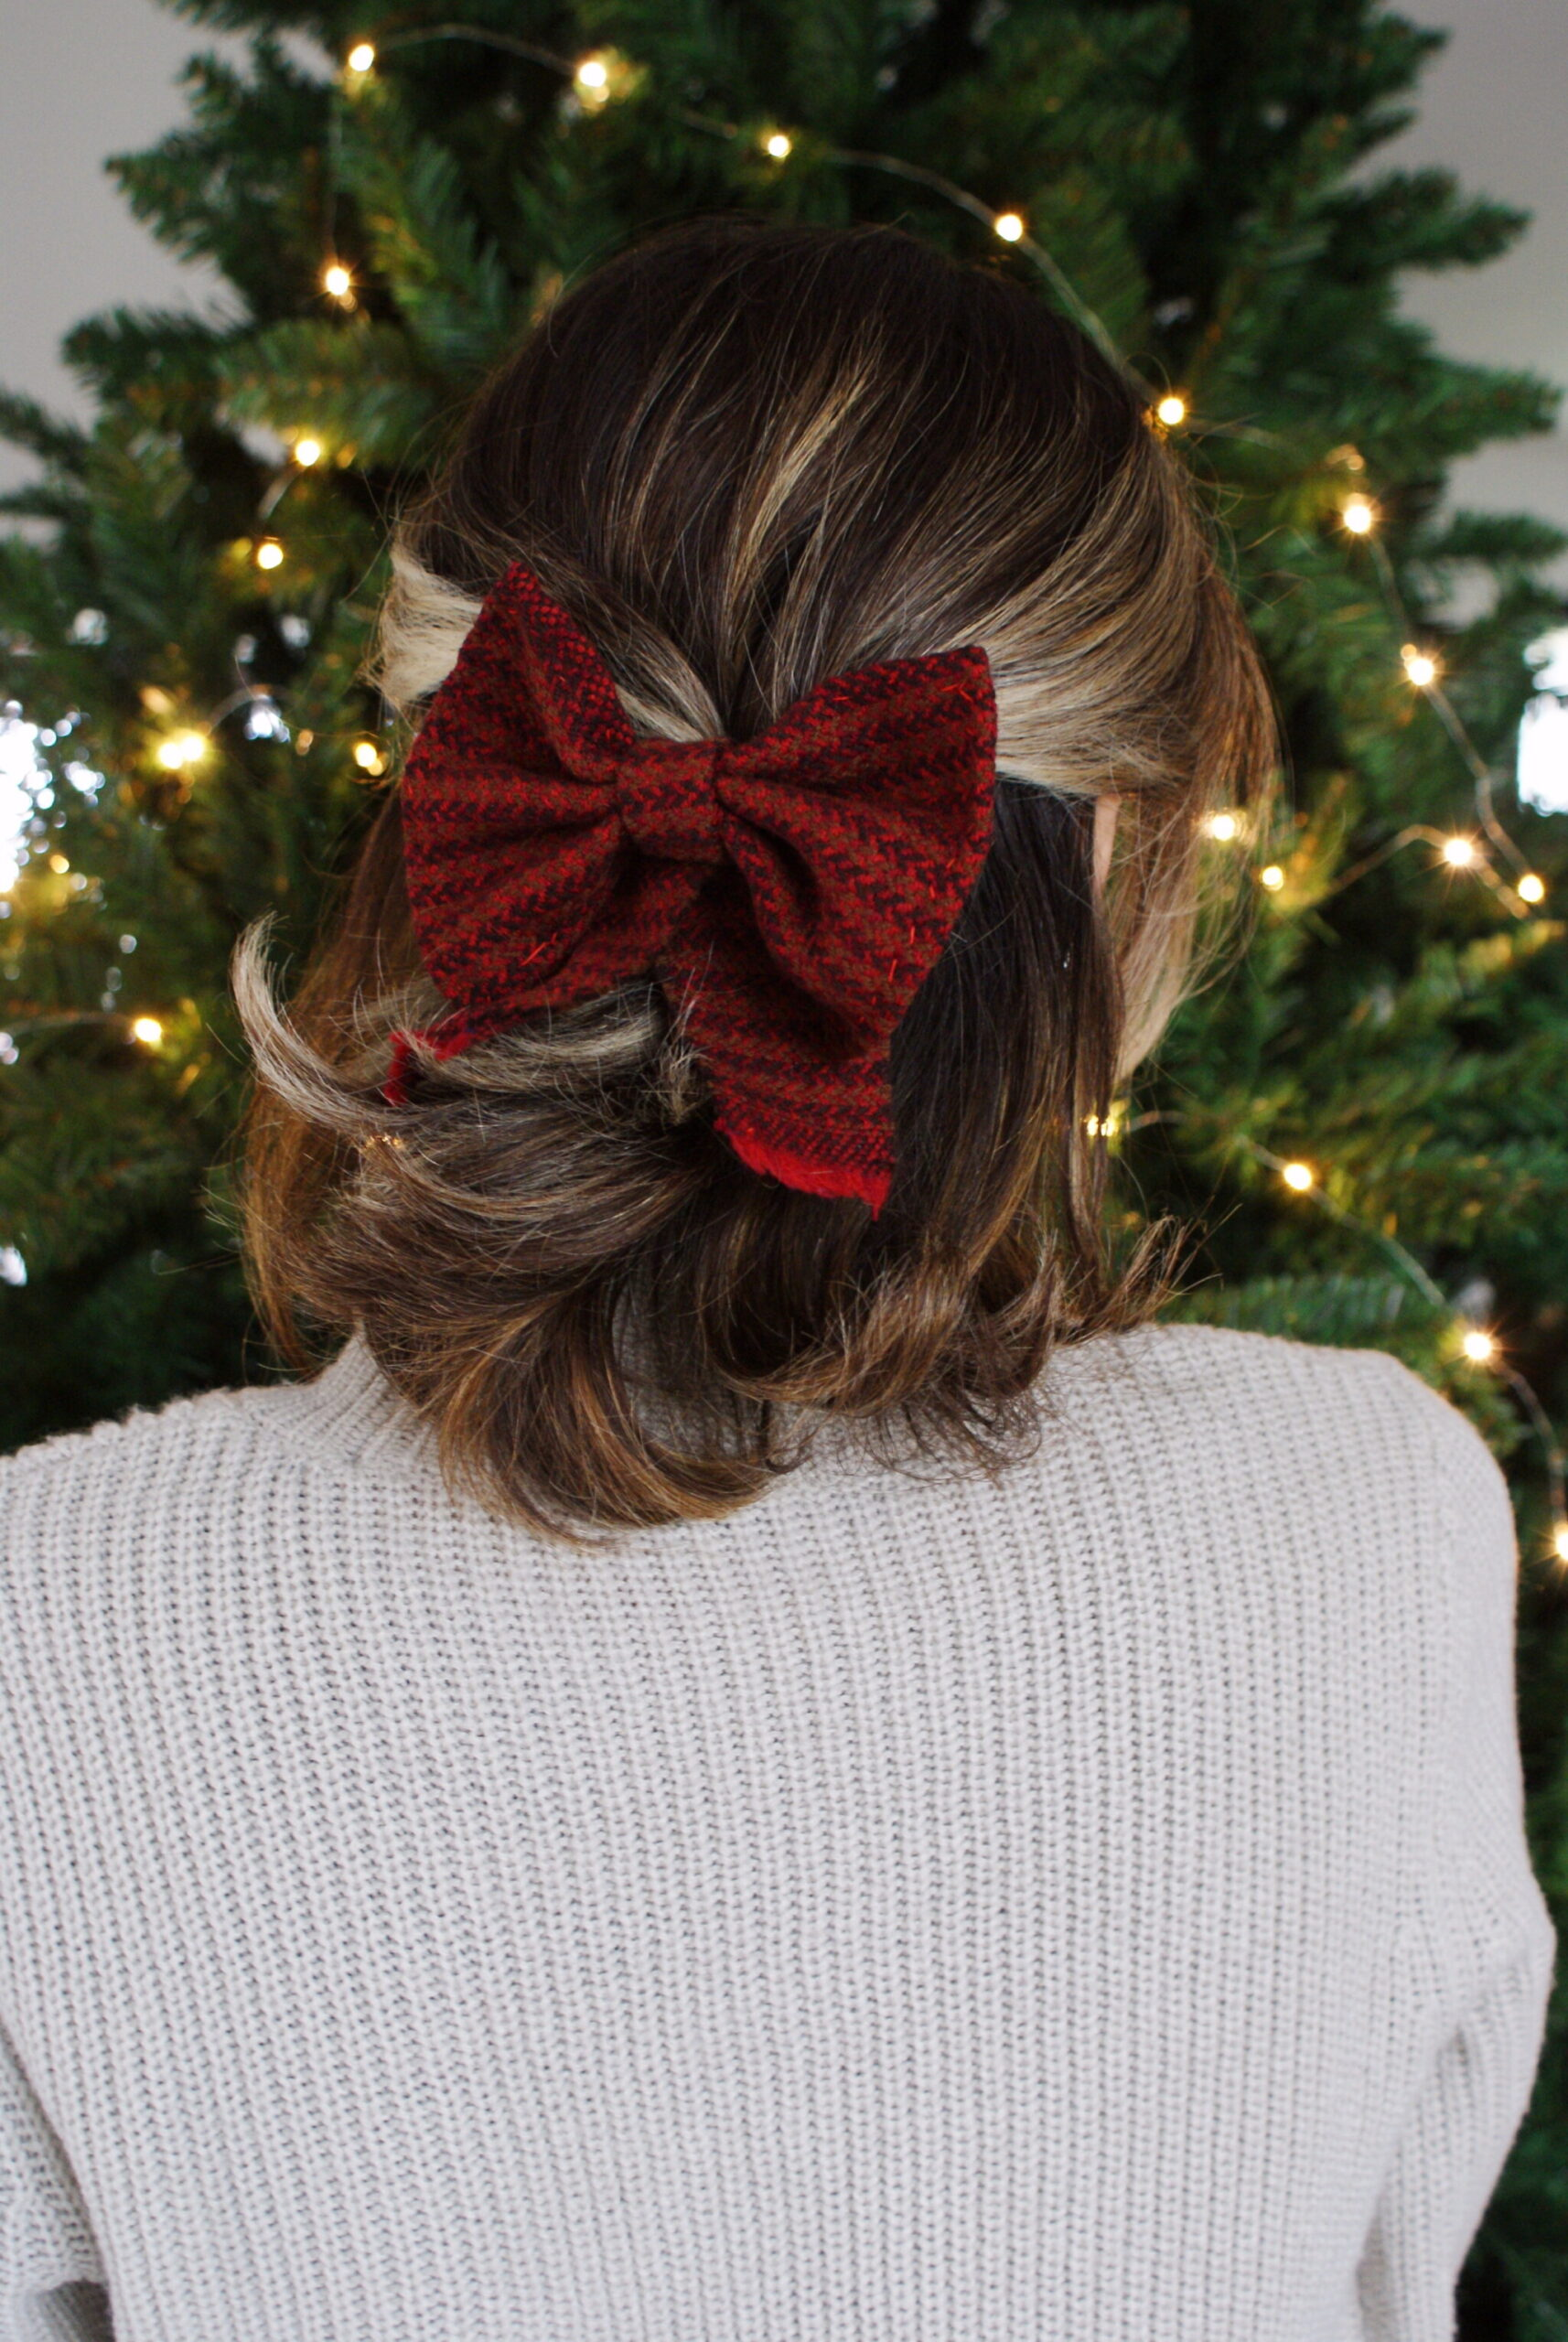 diy tartan bow hair clip easy handmade accessory festive outfits christmas tutorial francinesplaceblog